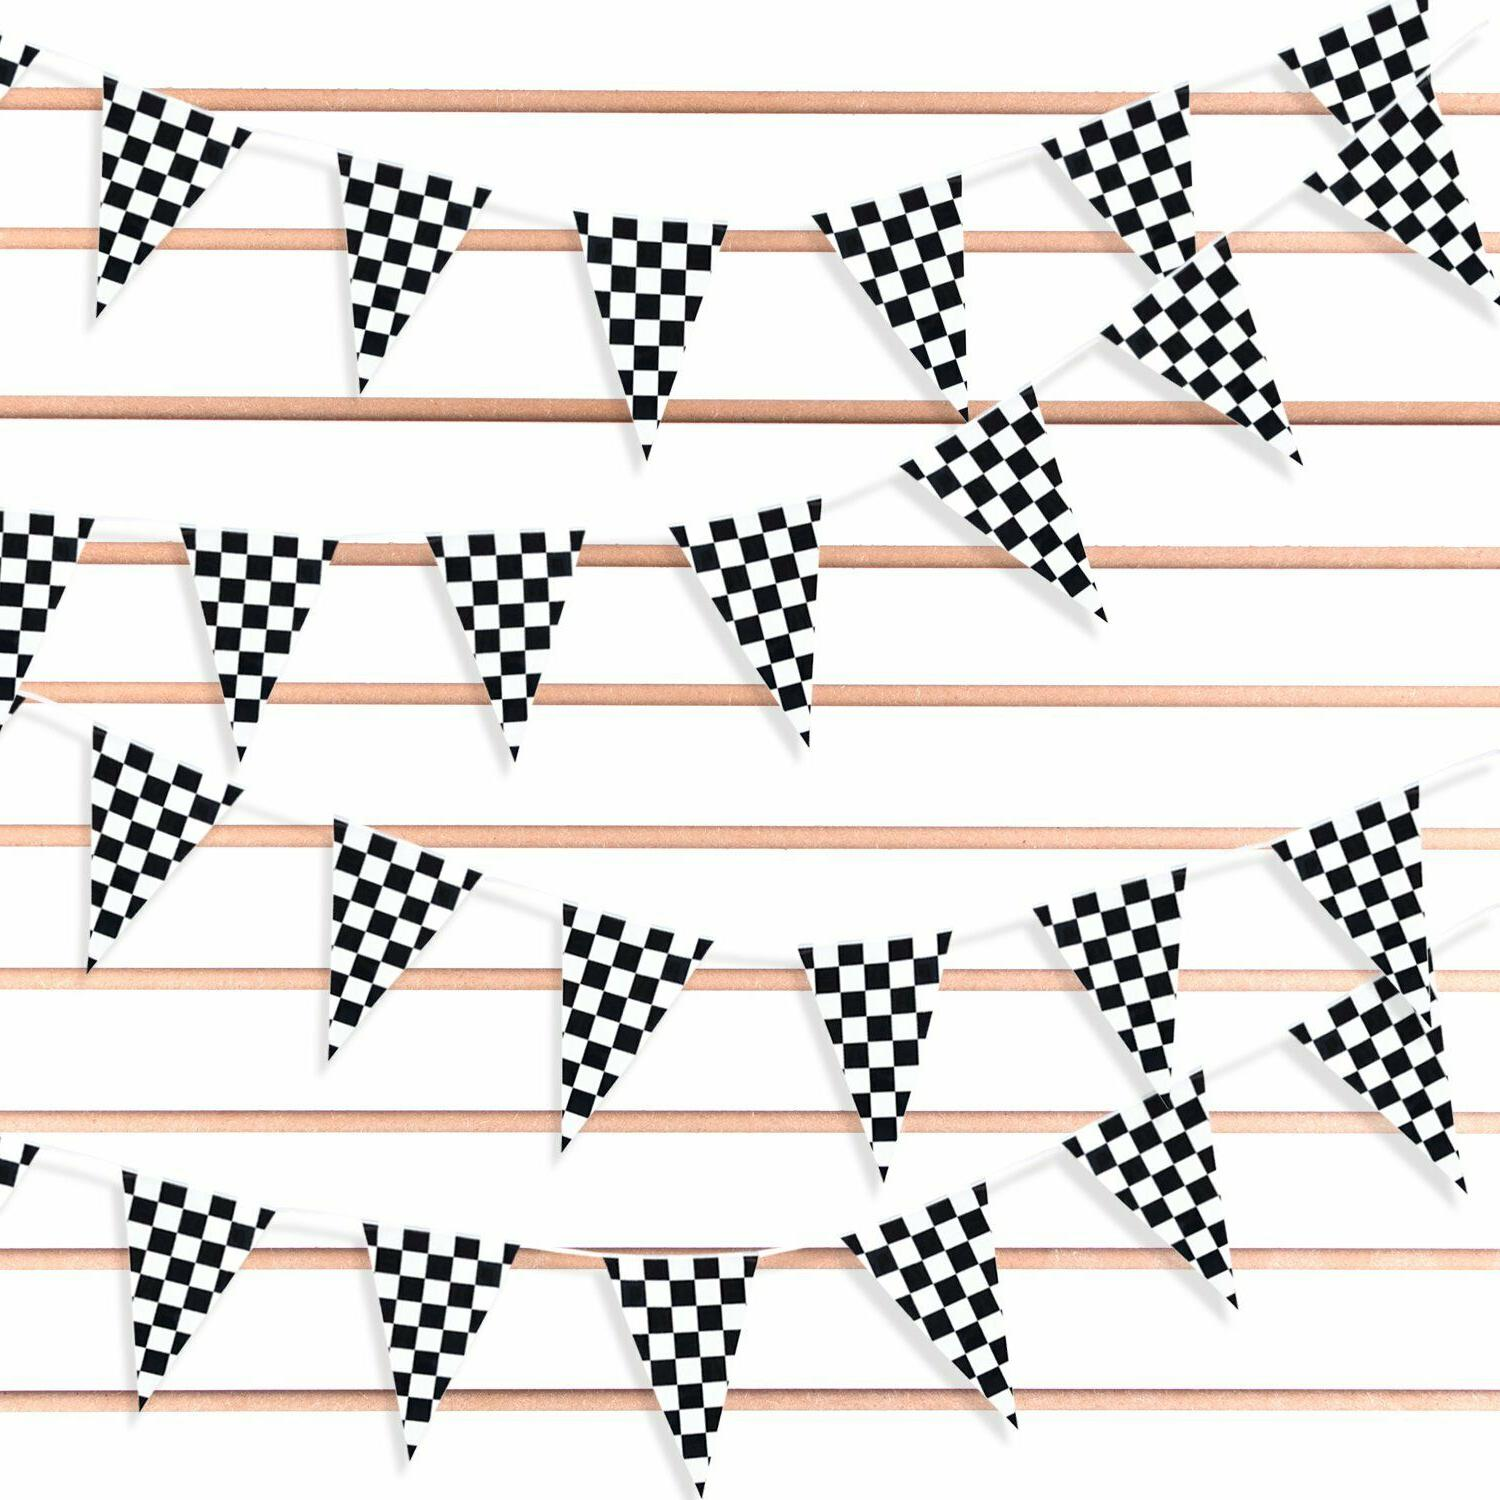 100' Feet Black and White Checkered Flags Pennant String Ban